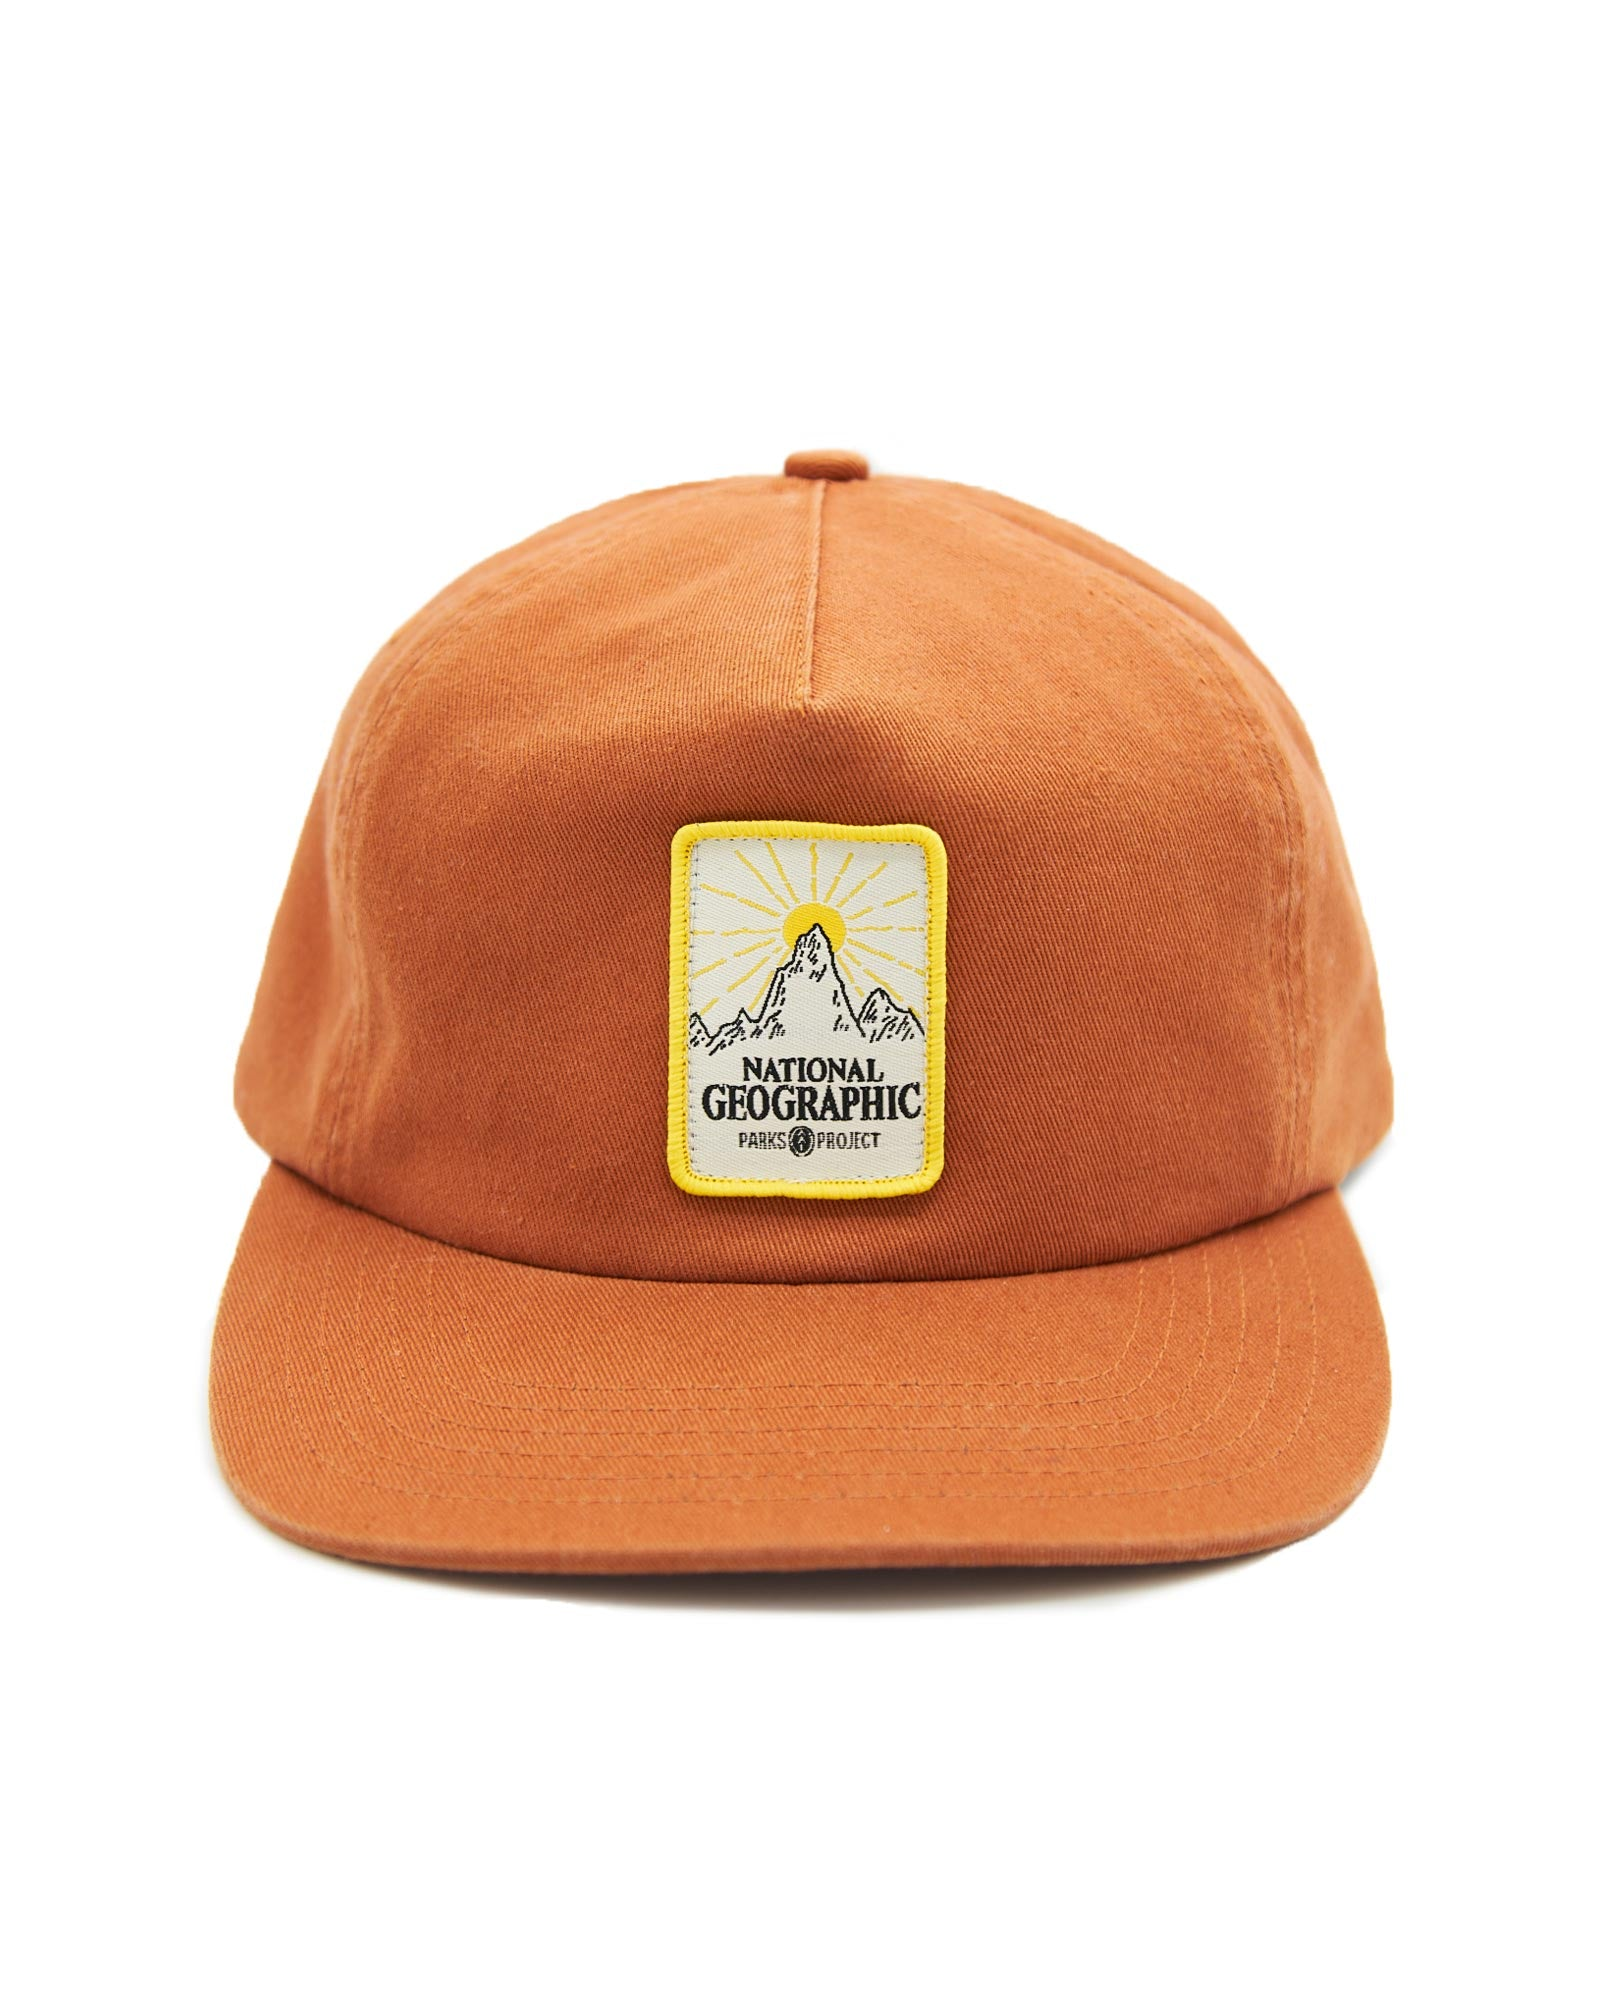 National Geographic X Parks Project Peaks Patch Hat | Parks Project | National Parks Hat